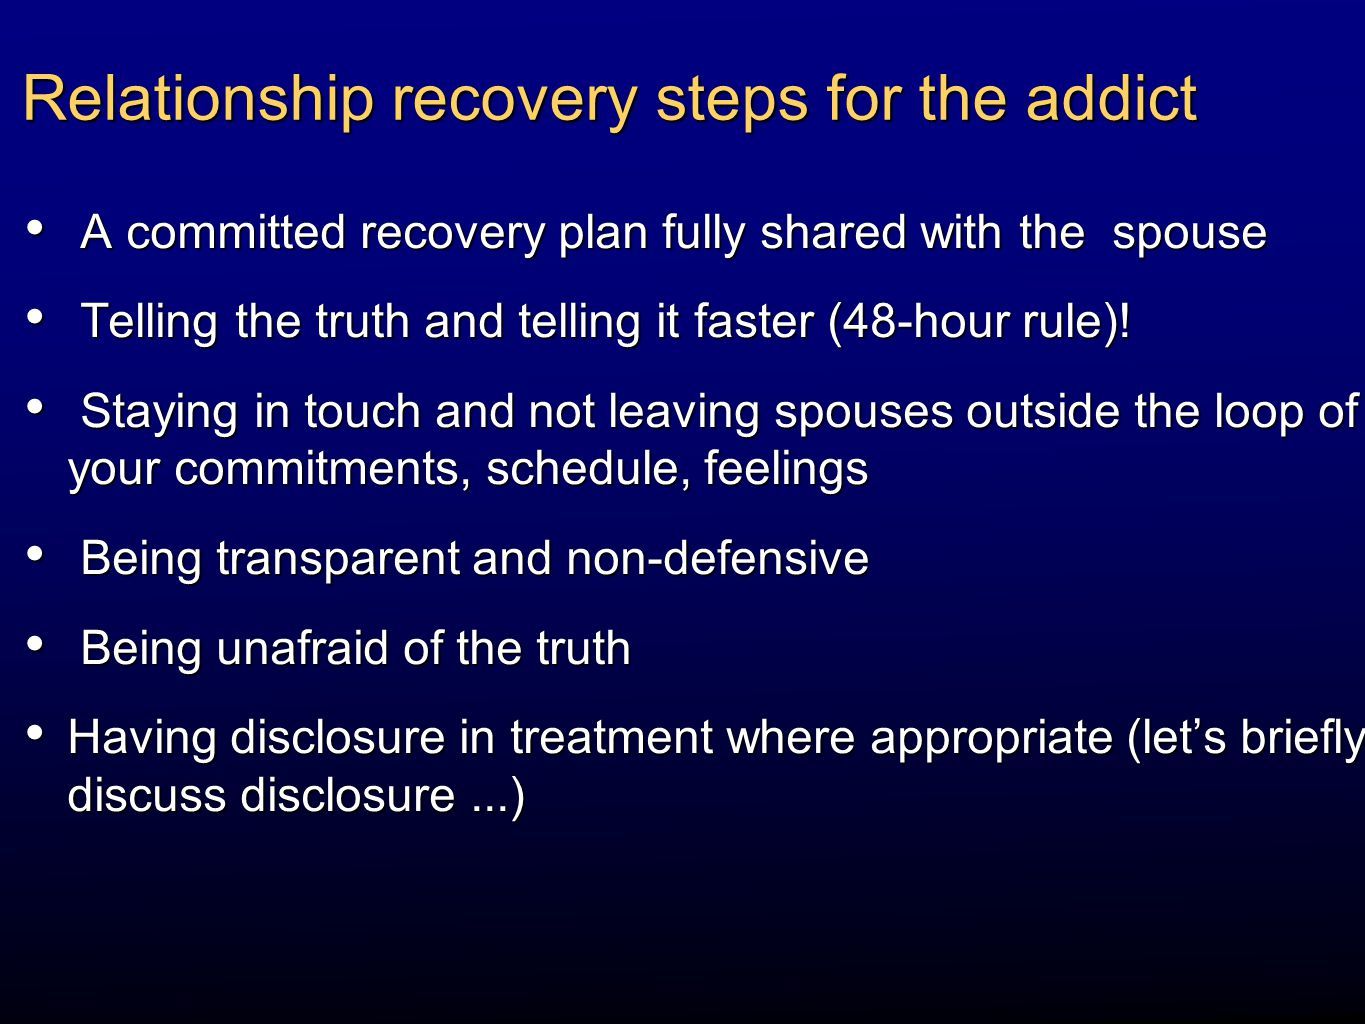 Relationship recovery steps for the addict